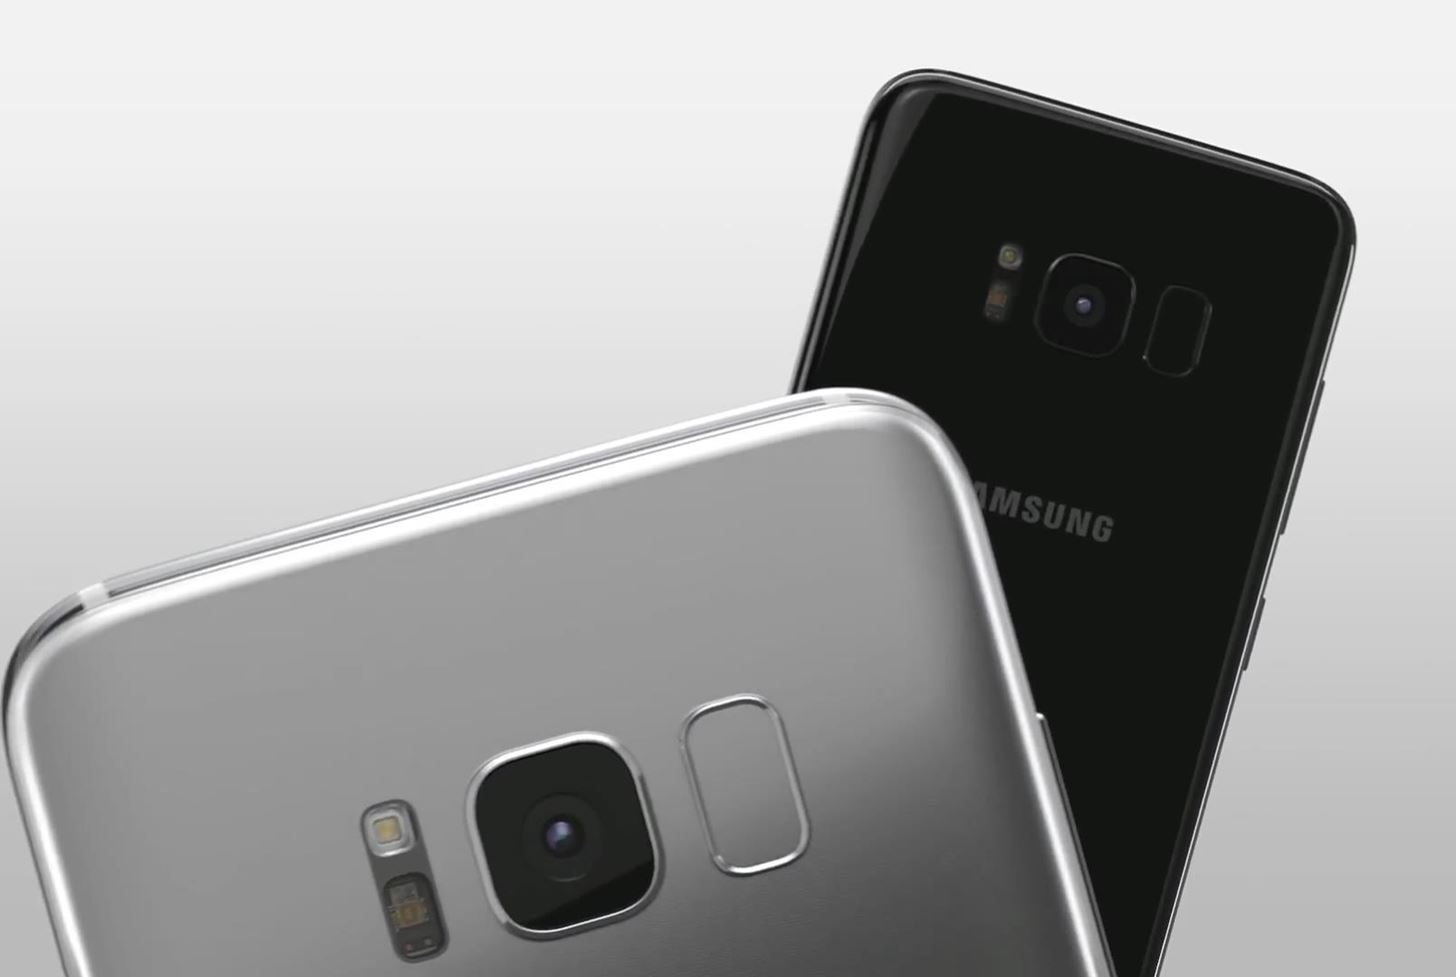 Roundup: 5 Samsung Galaxy S8 Features You Need to Know About